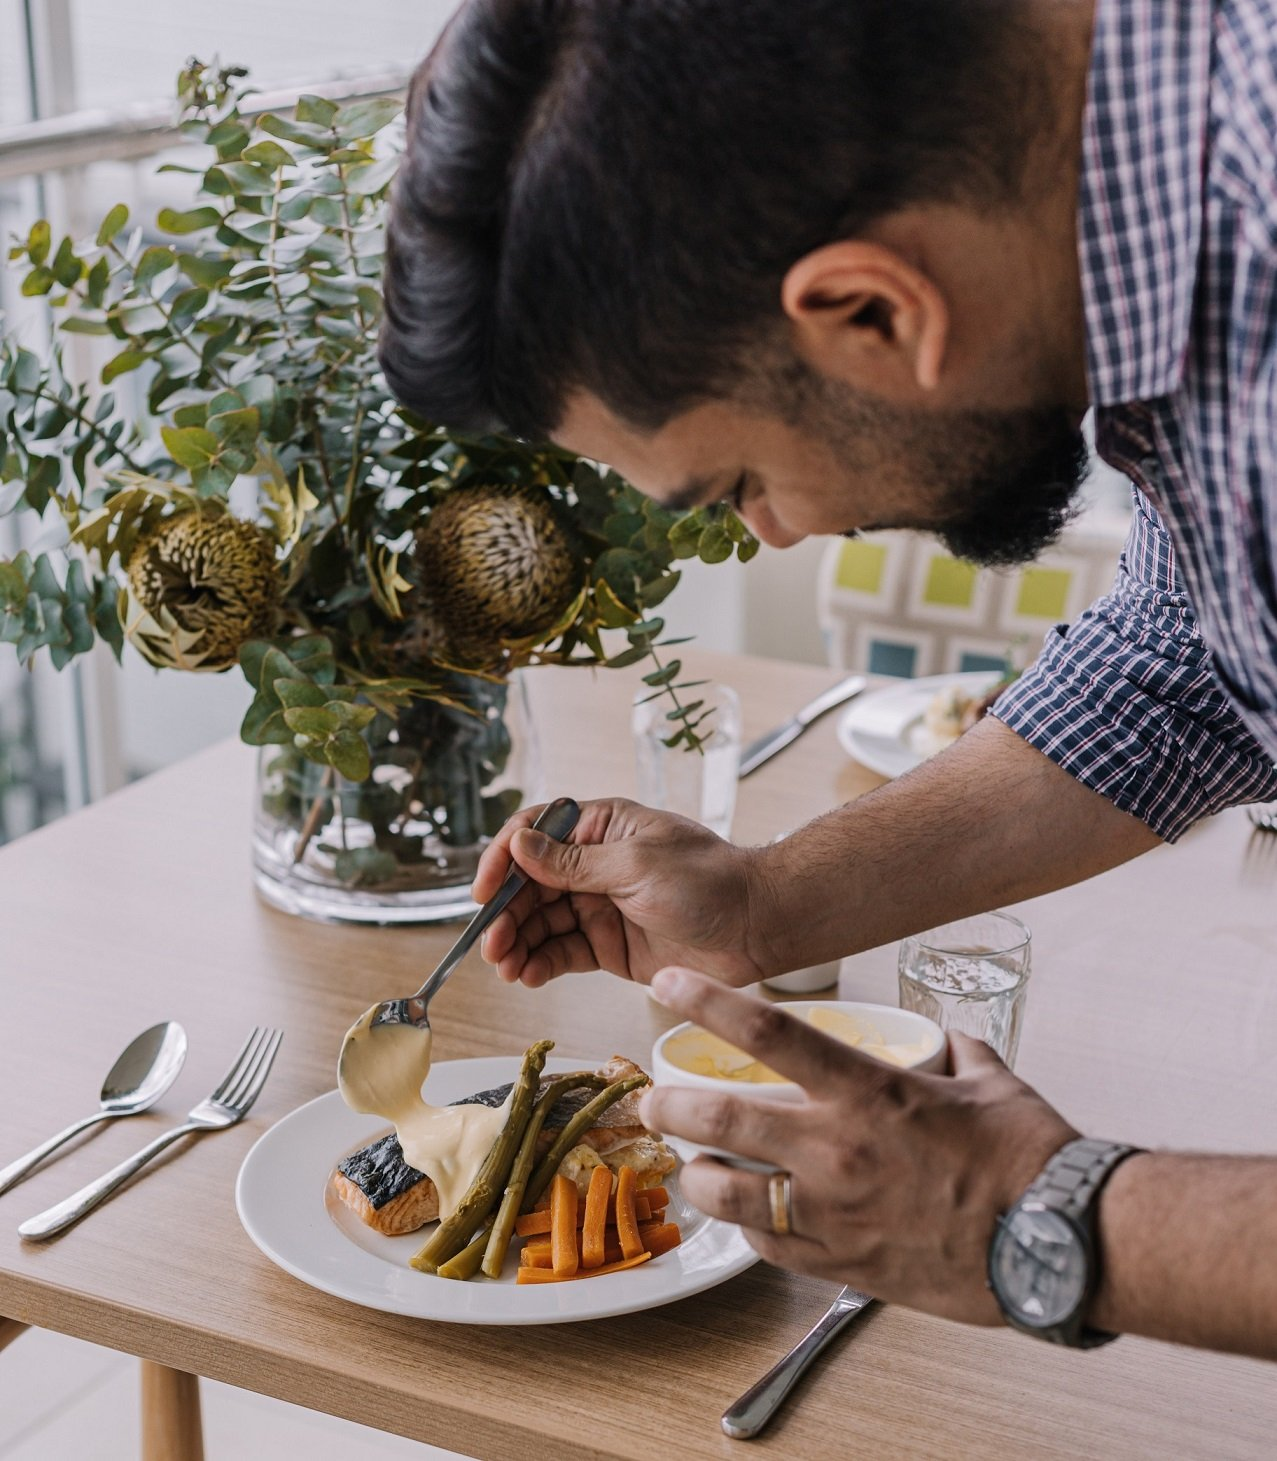 George Pratheesh puts the finishing touches to a resident's meal at the Carinity Cedarbrook aged care community.